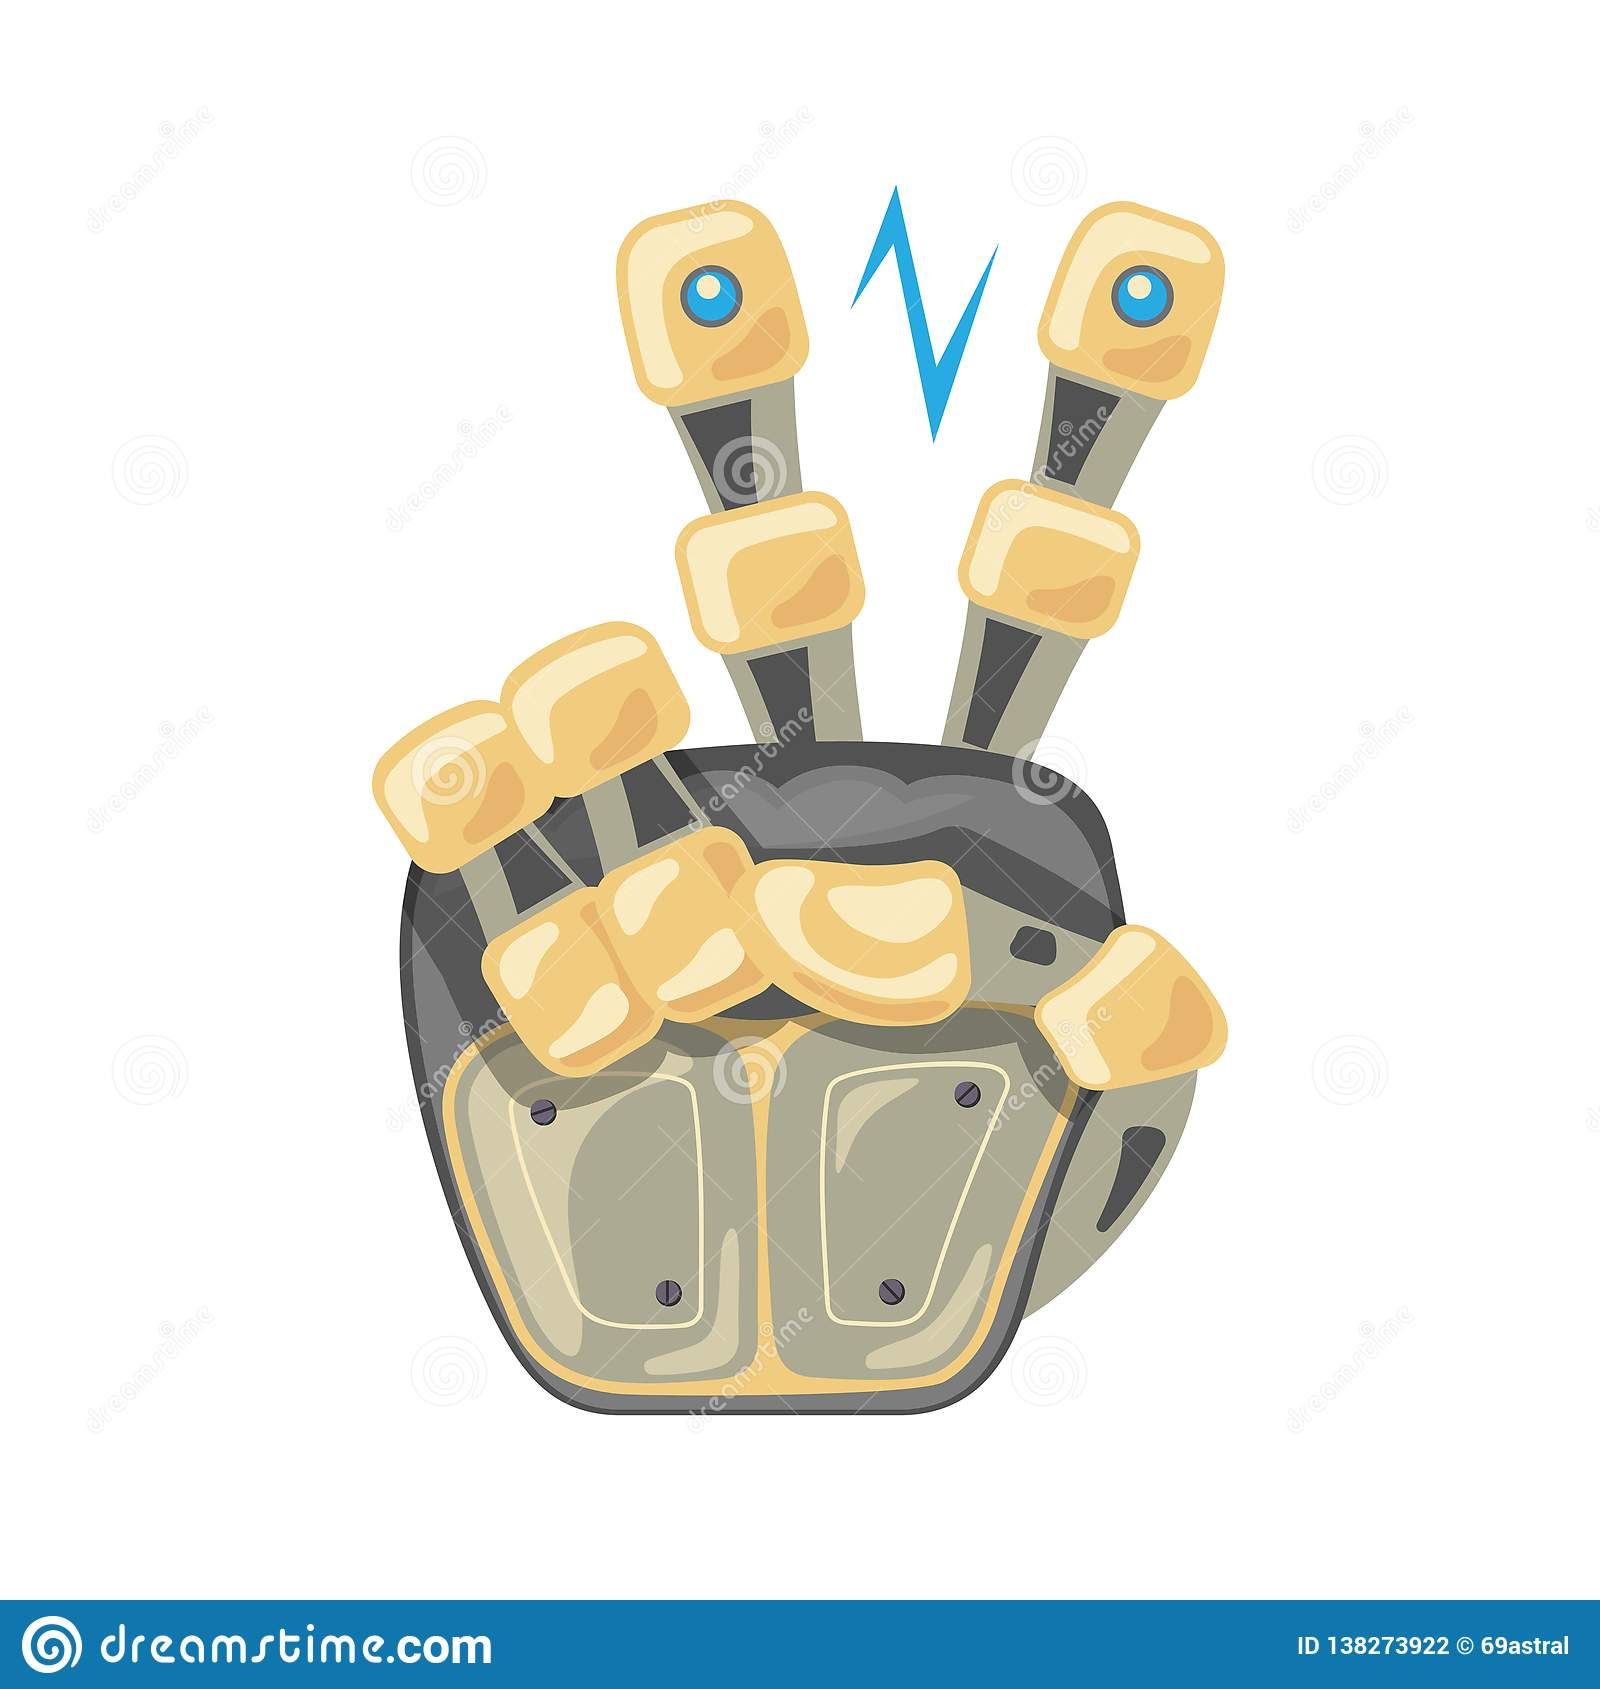 Robot hand. Mechanical technology machine engineering symbol. Two number. Pointer. Second. Peace. Energy between fingers